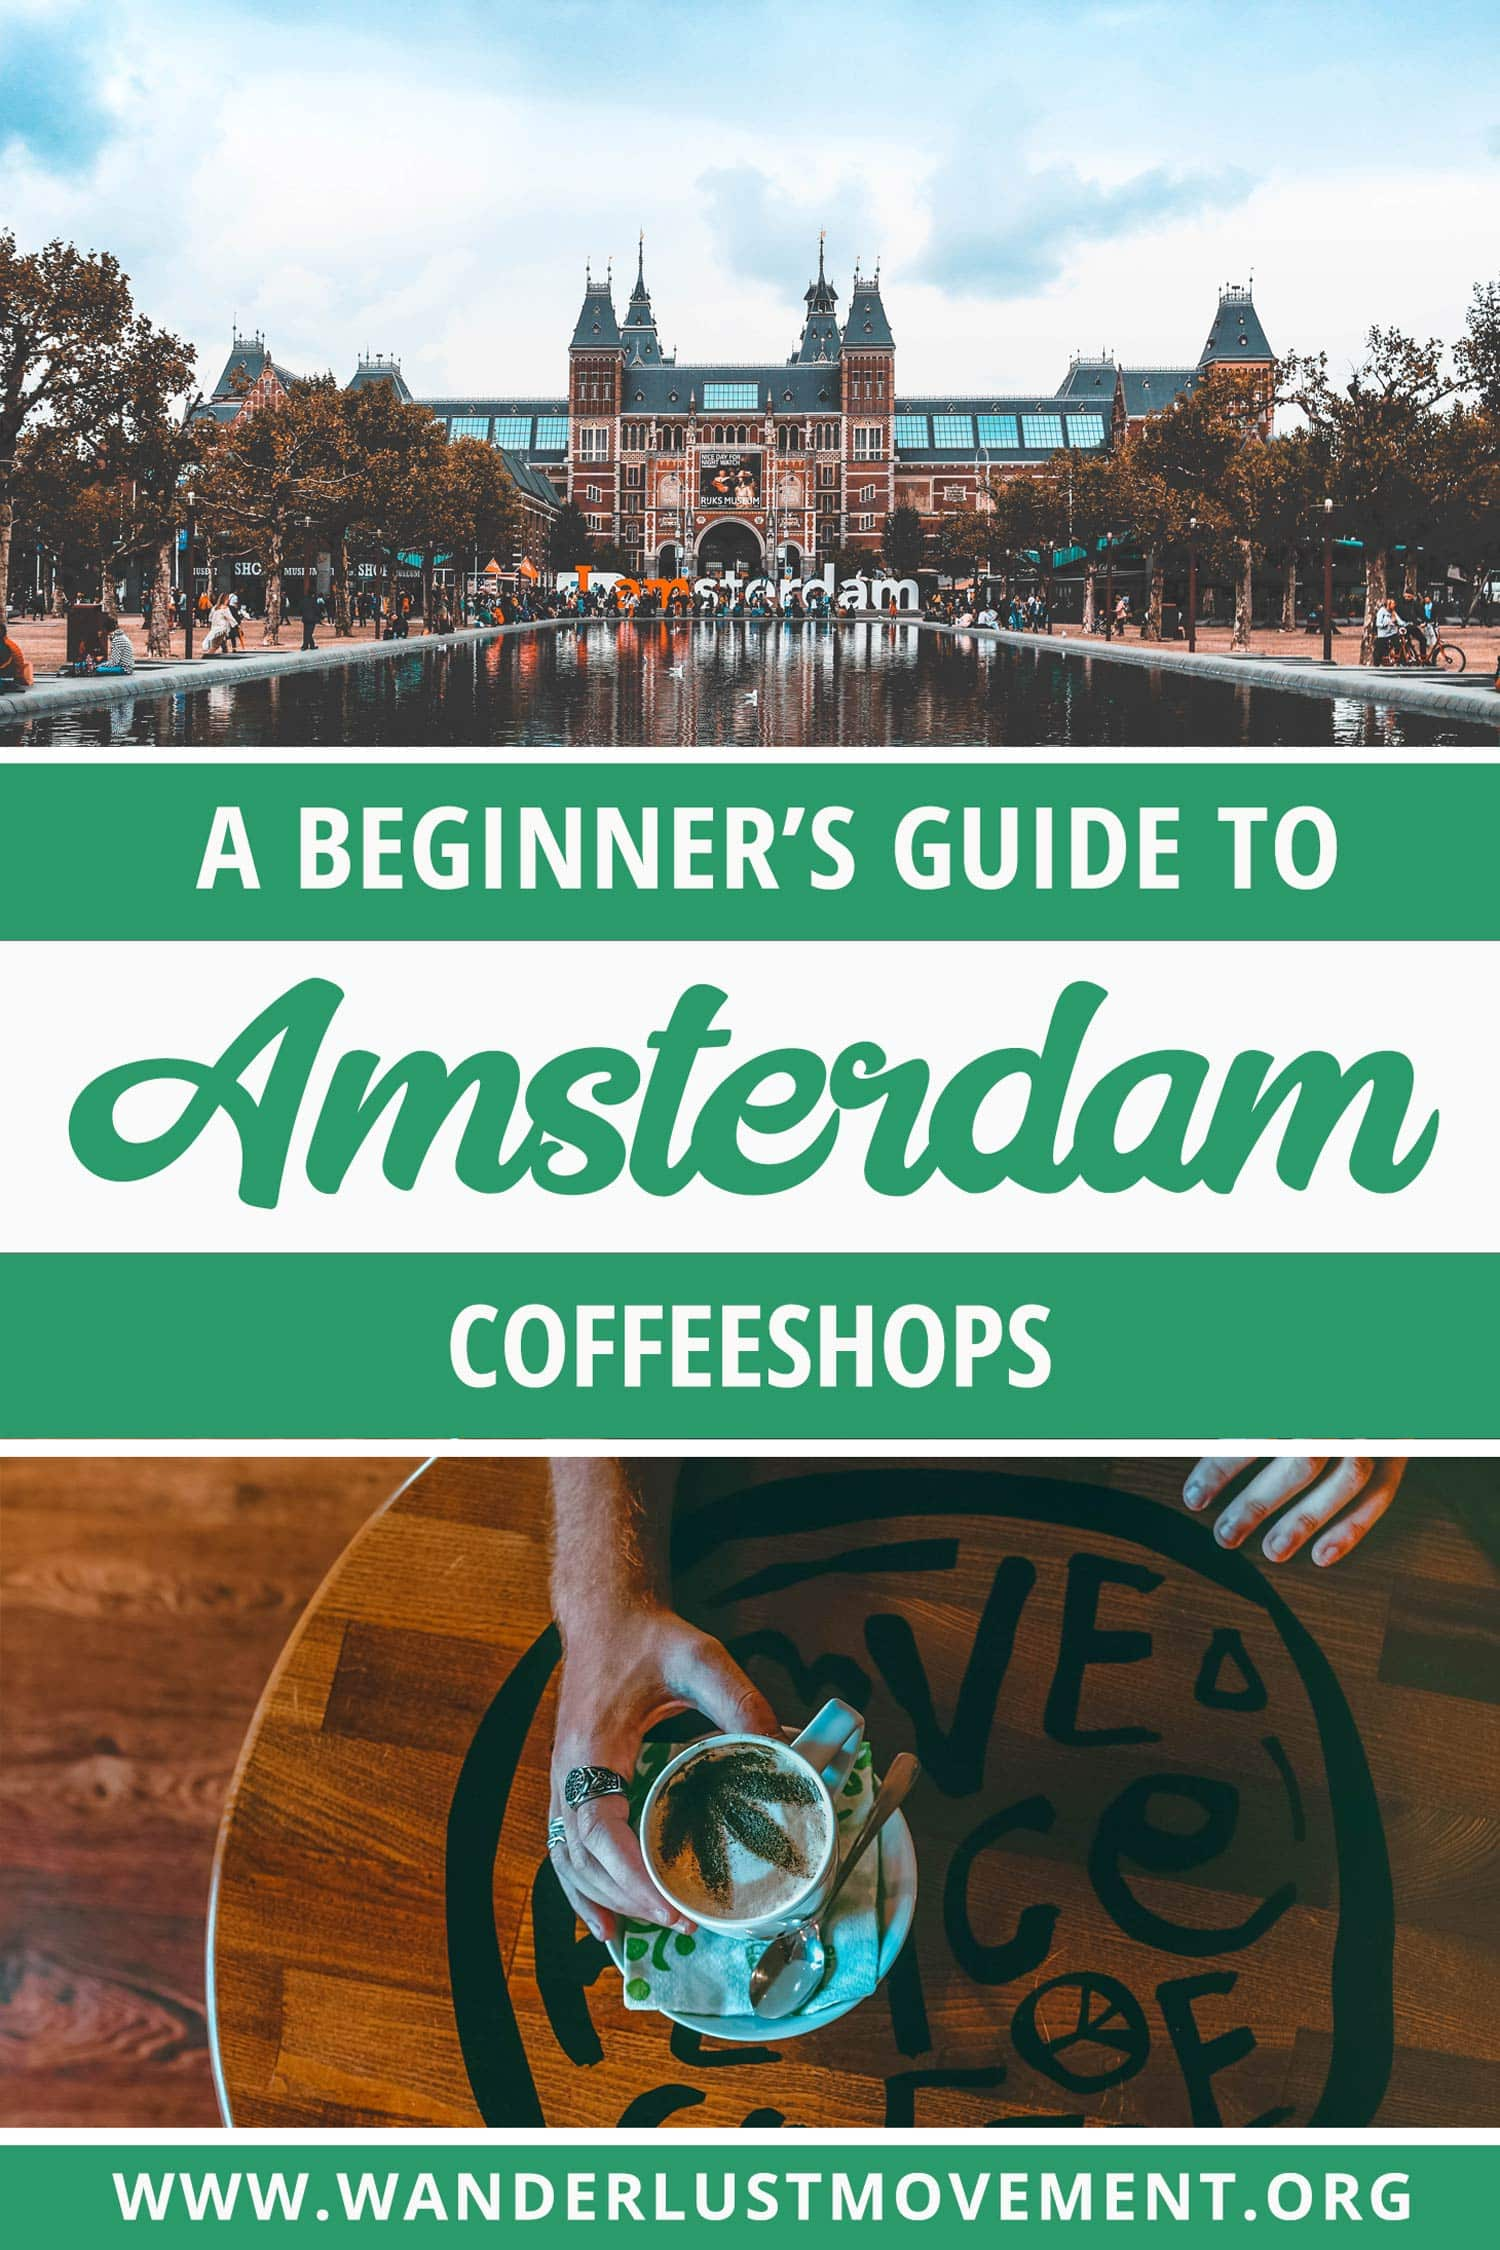 Planning a trip to Amsterdam\'s coffeeshops? Here\'s a complete guide with everything you need to know about getting high for the first time in Amsterdam, Netherlands. From 420 coffeeshop etiquette to what to expect and where to go - I\'ve got you covered. | Amsterdam travel tips | | things to do in Amsterdam | #amsterdam #netherlands #coffeeshops #traveltips #420